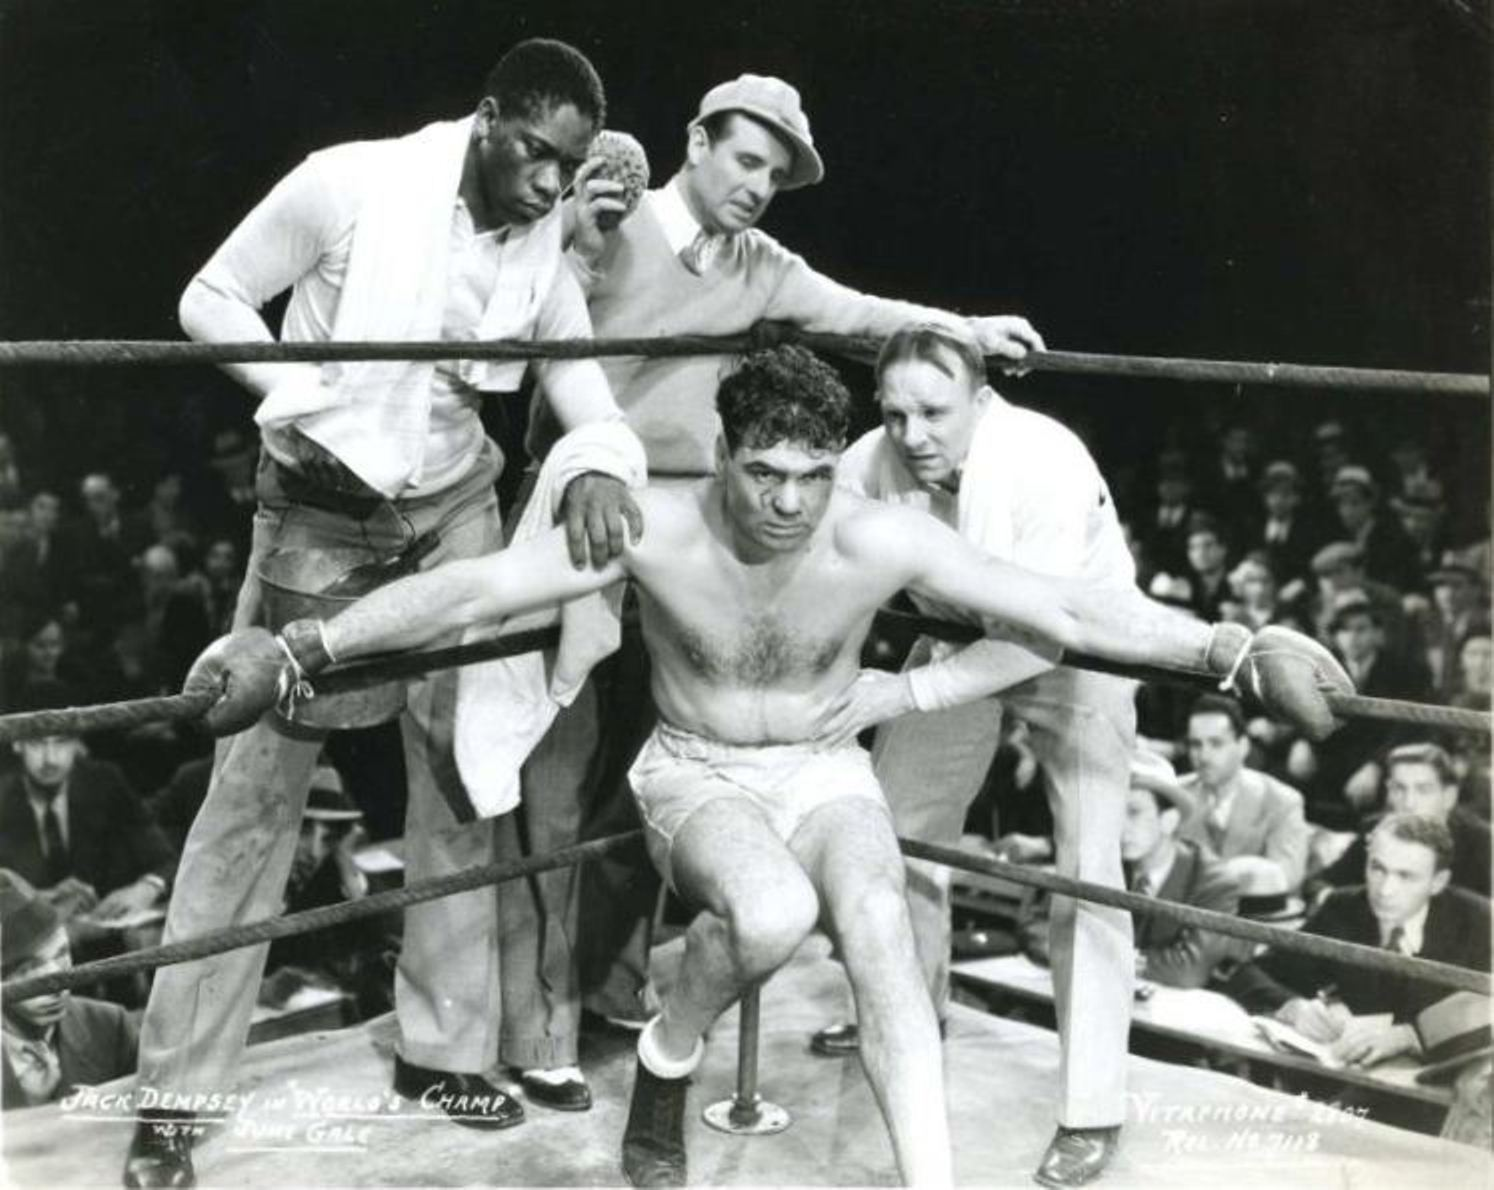 Jack Dempsey in World's Champ